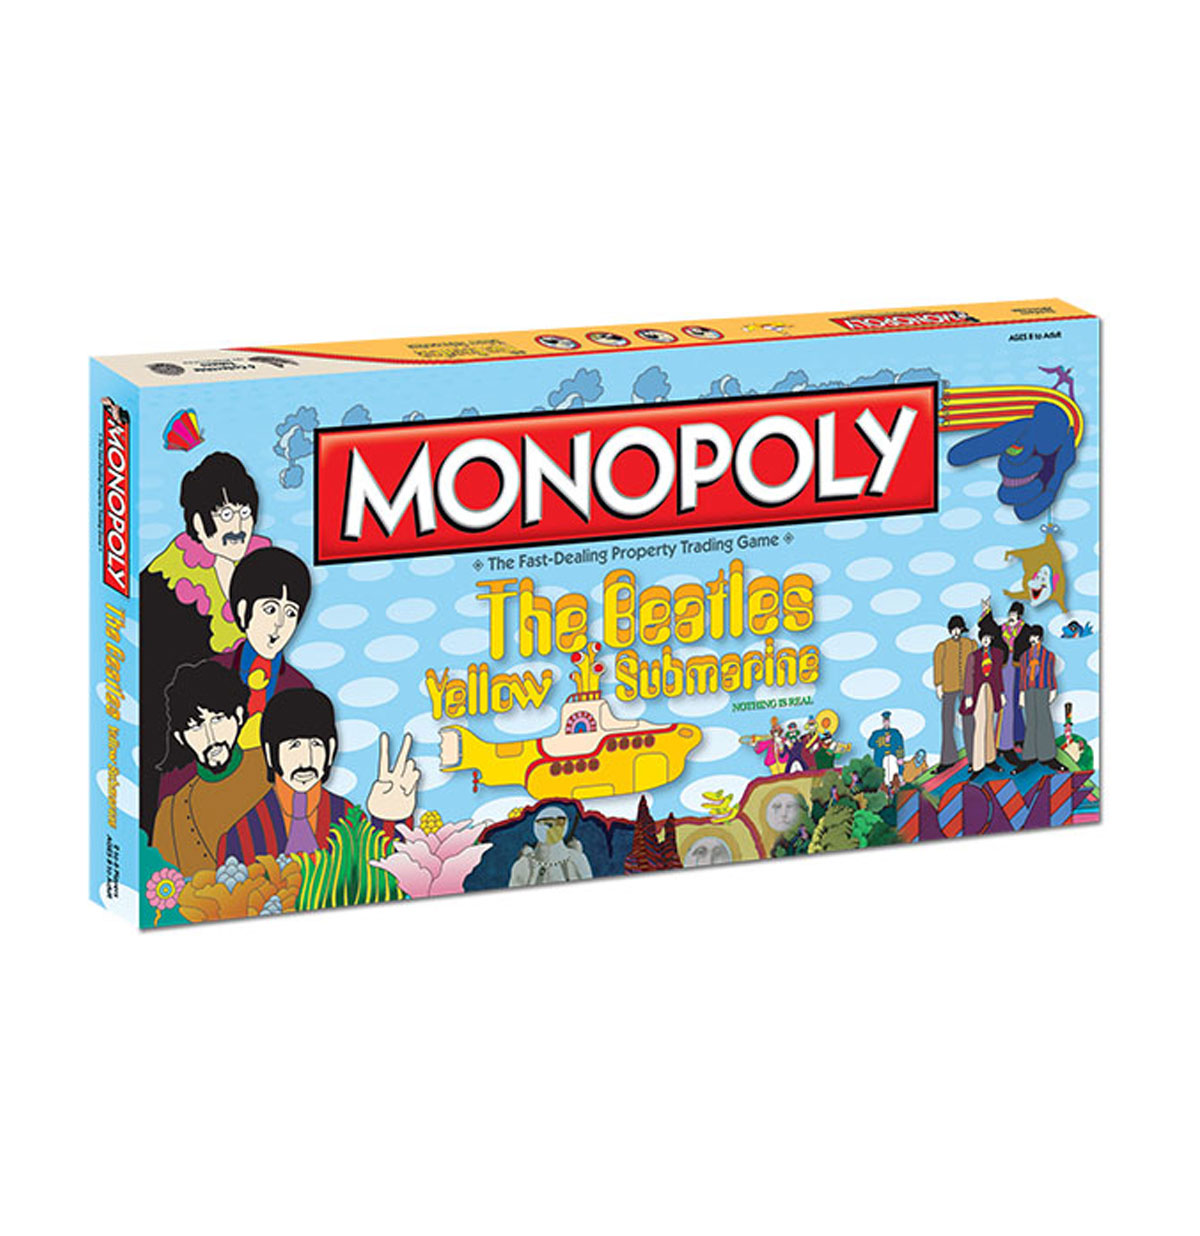 The Beatles - Yellow Submarine Monopoly - USA